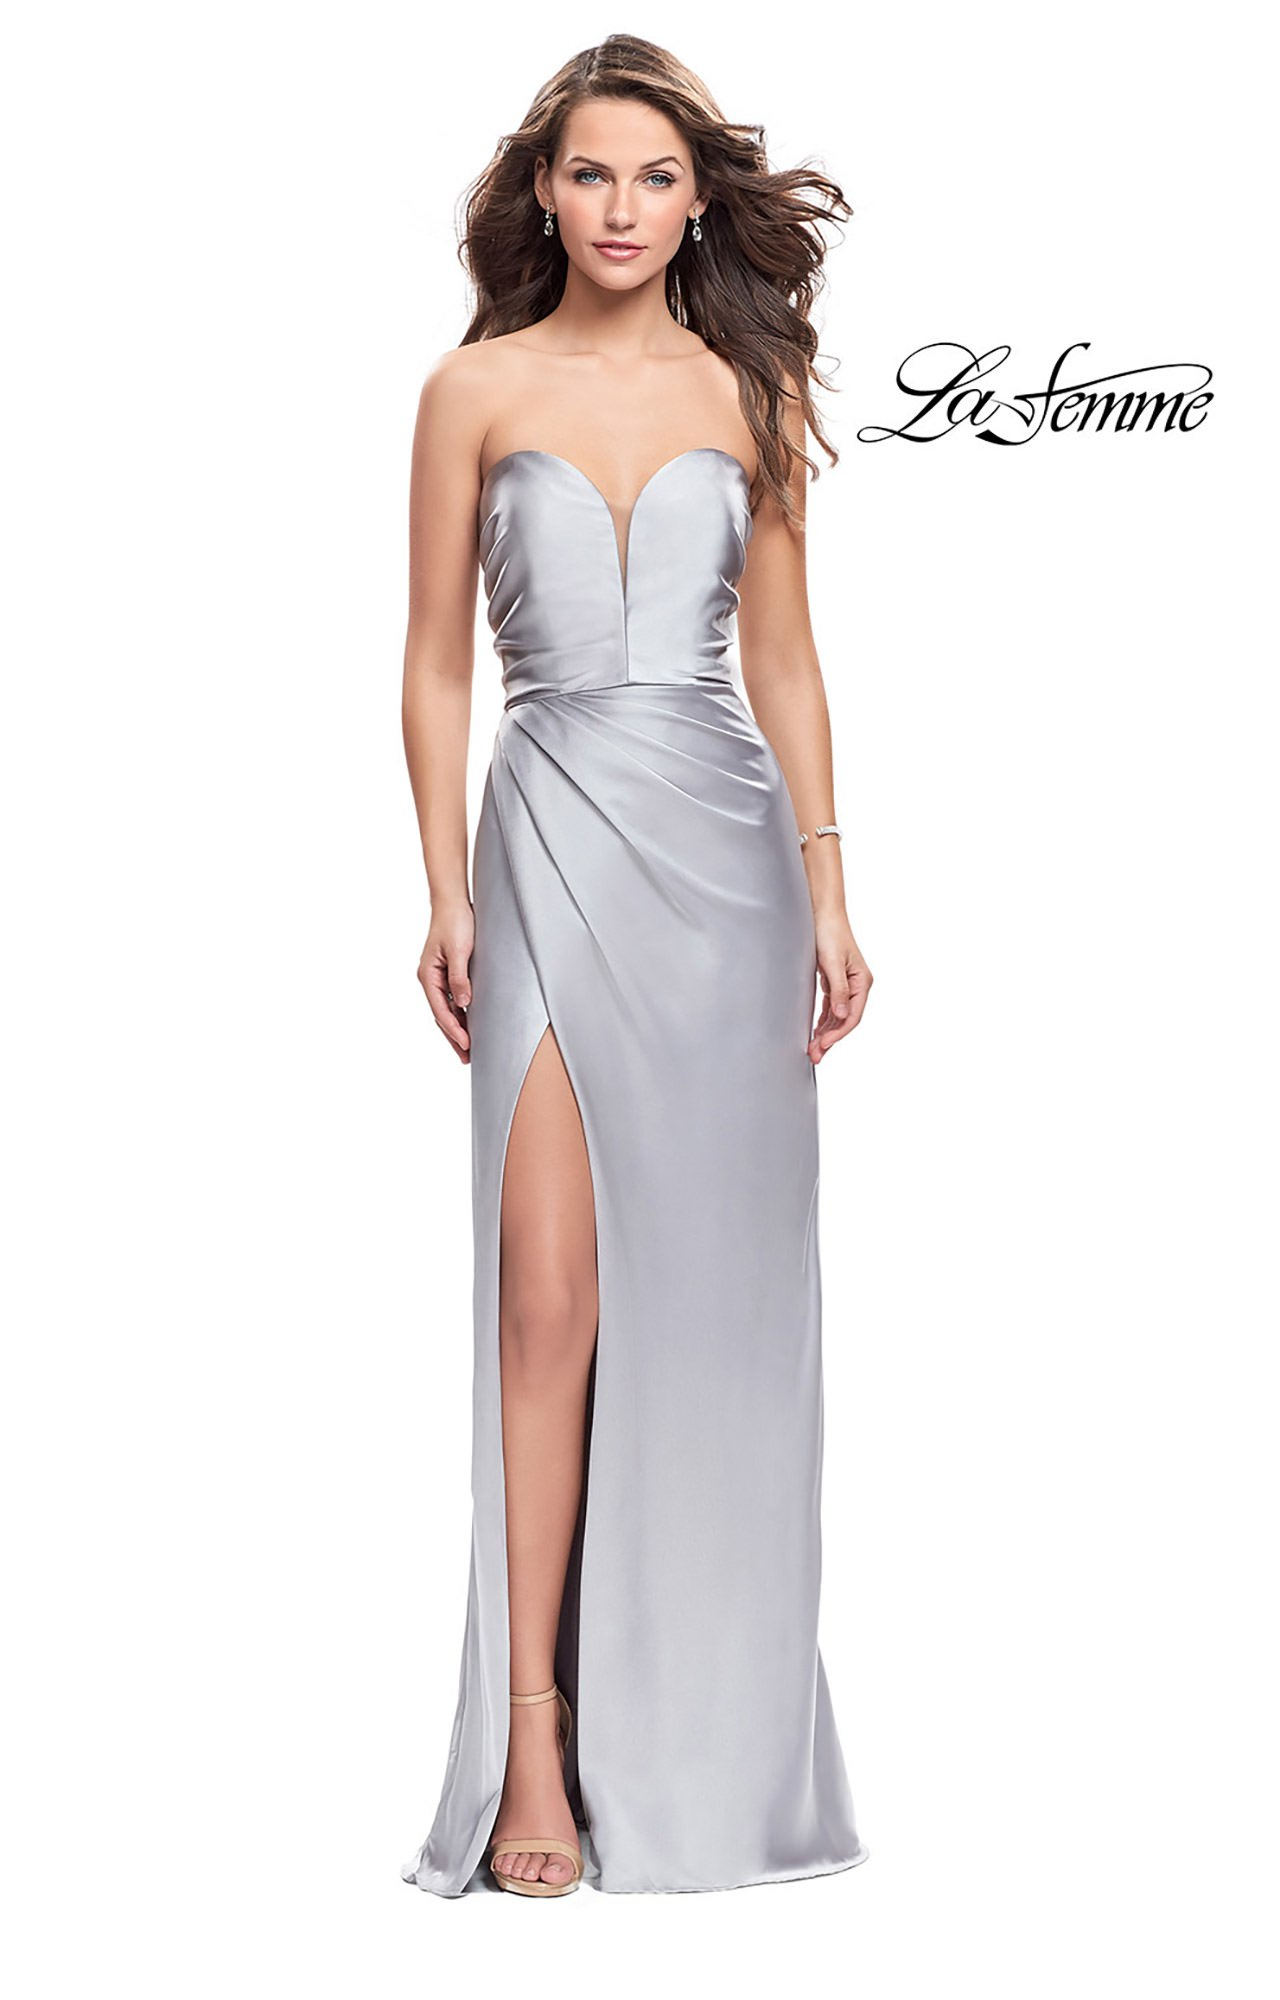 Fitted Strapless Dresses